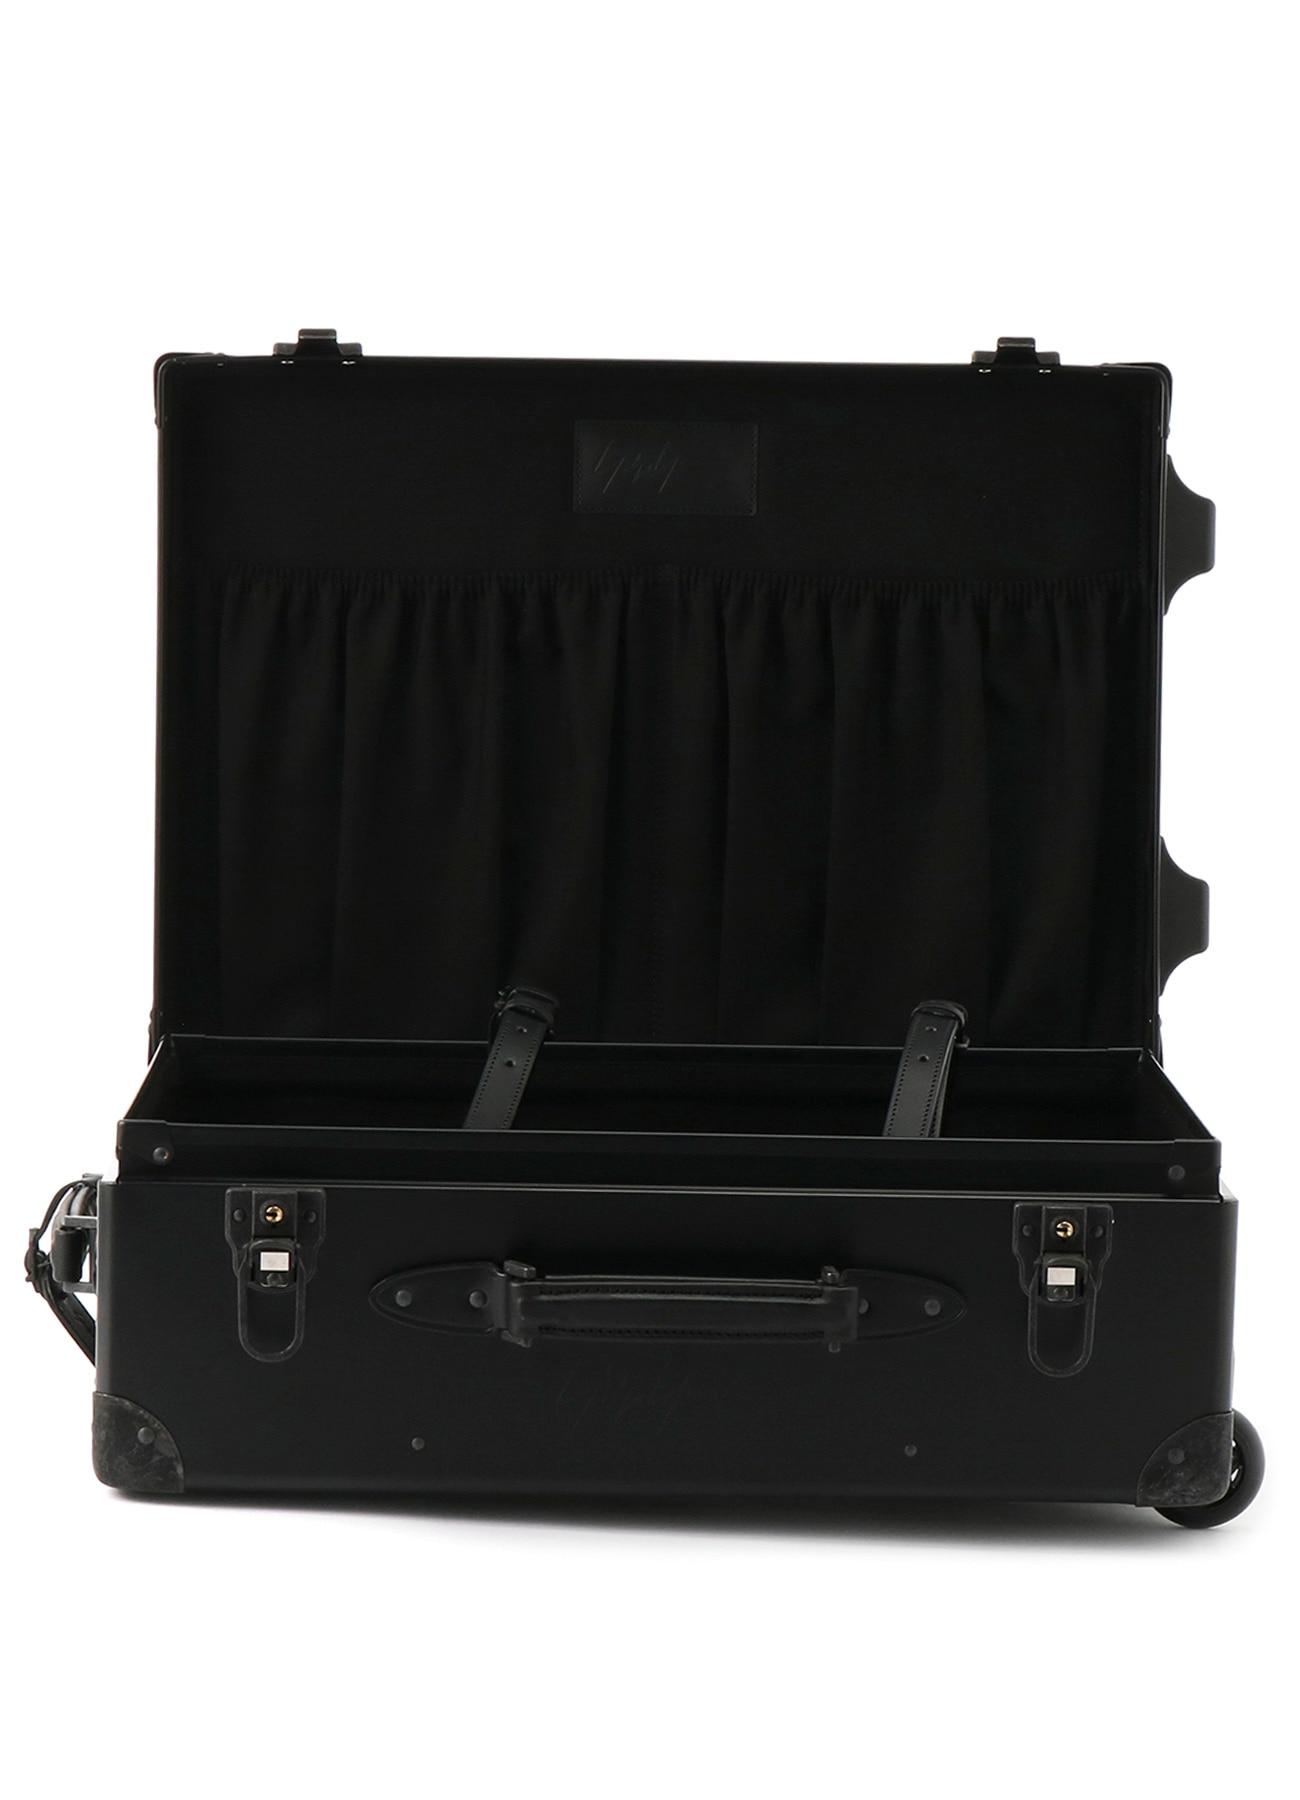 Aluminum trolley case